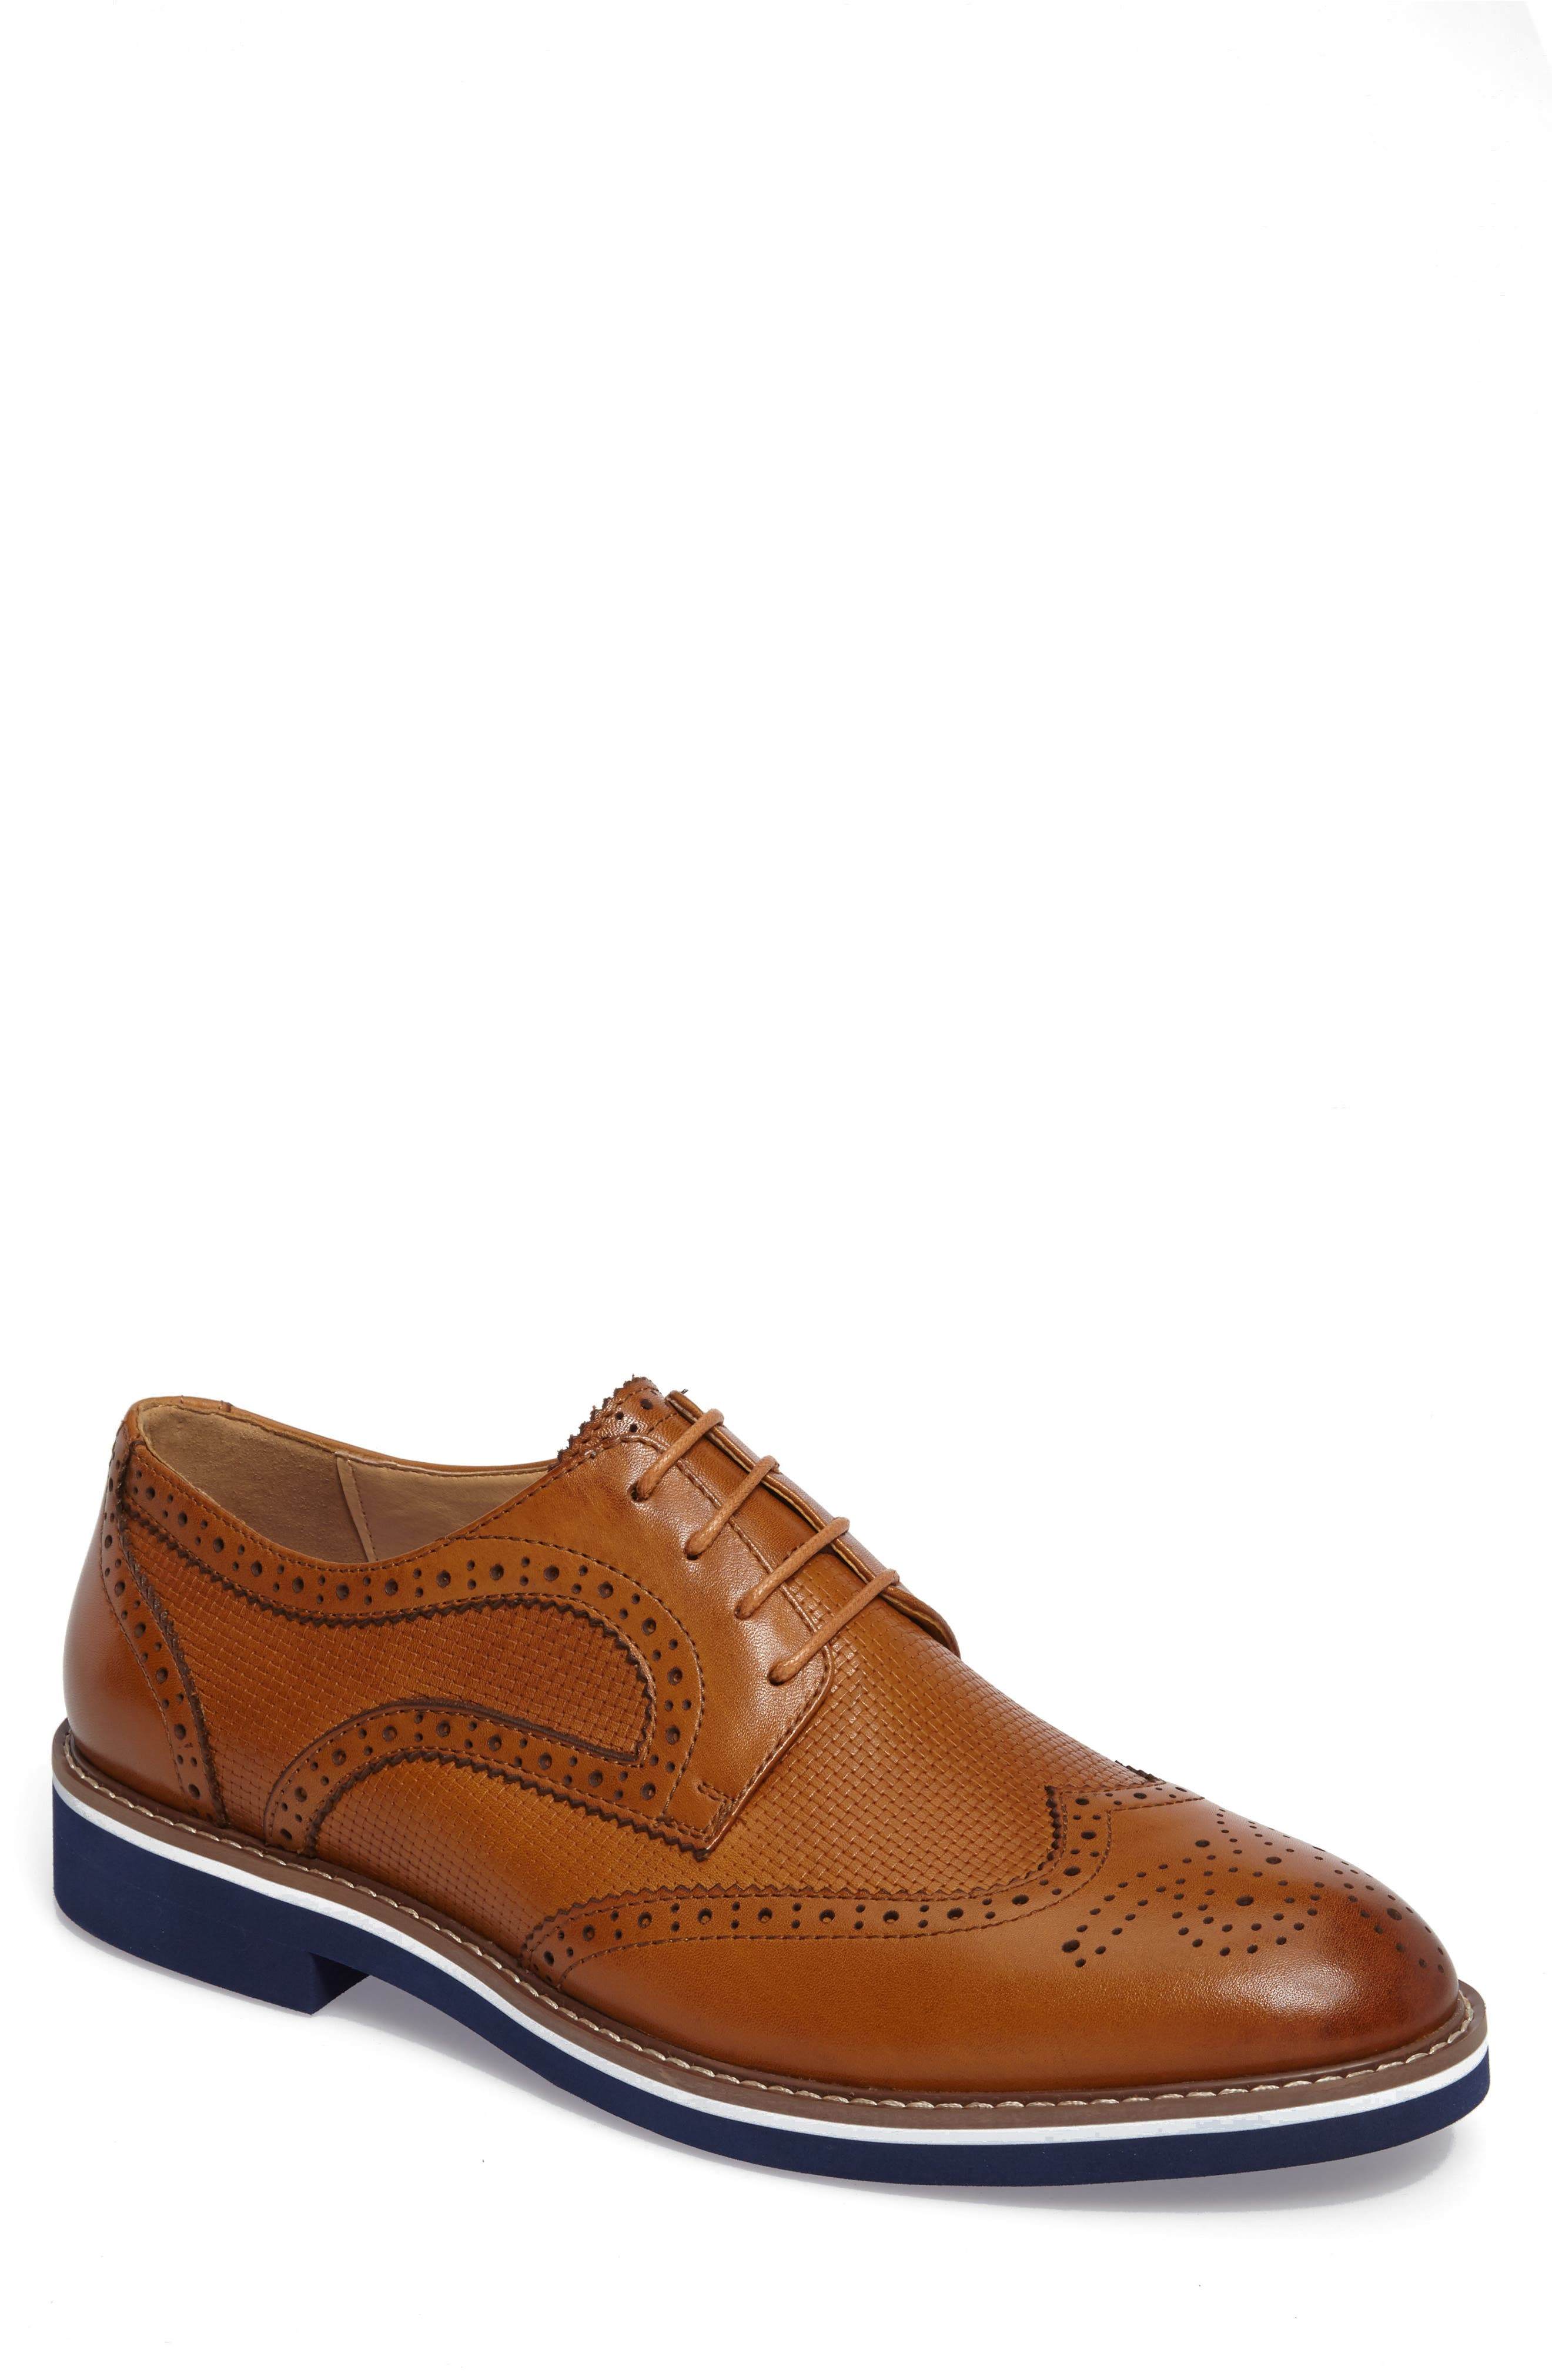 Northfields Spectator Shoe,                             Main thumbnail 1, color,                             Cognac Leather